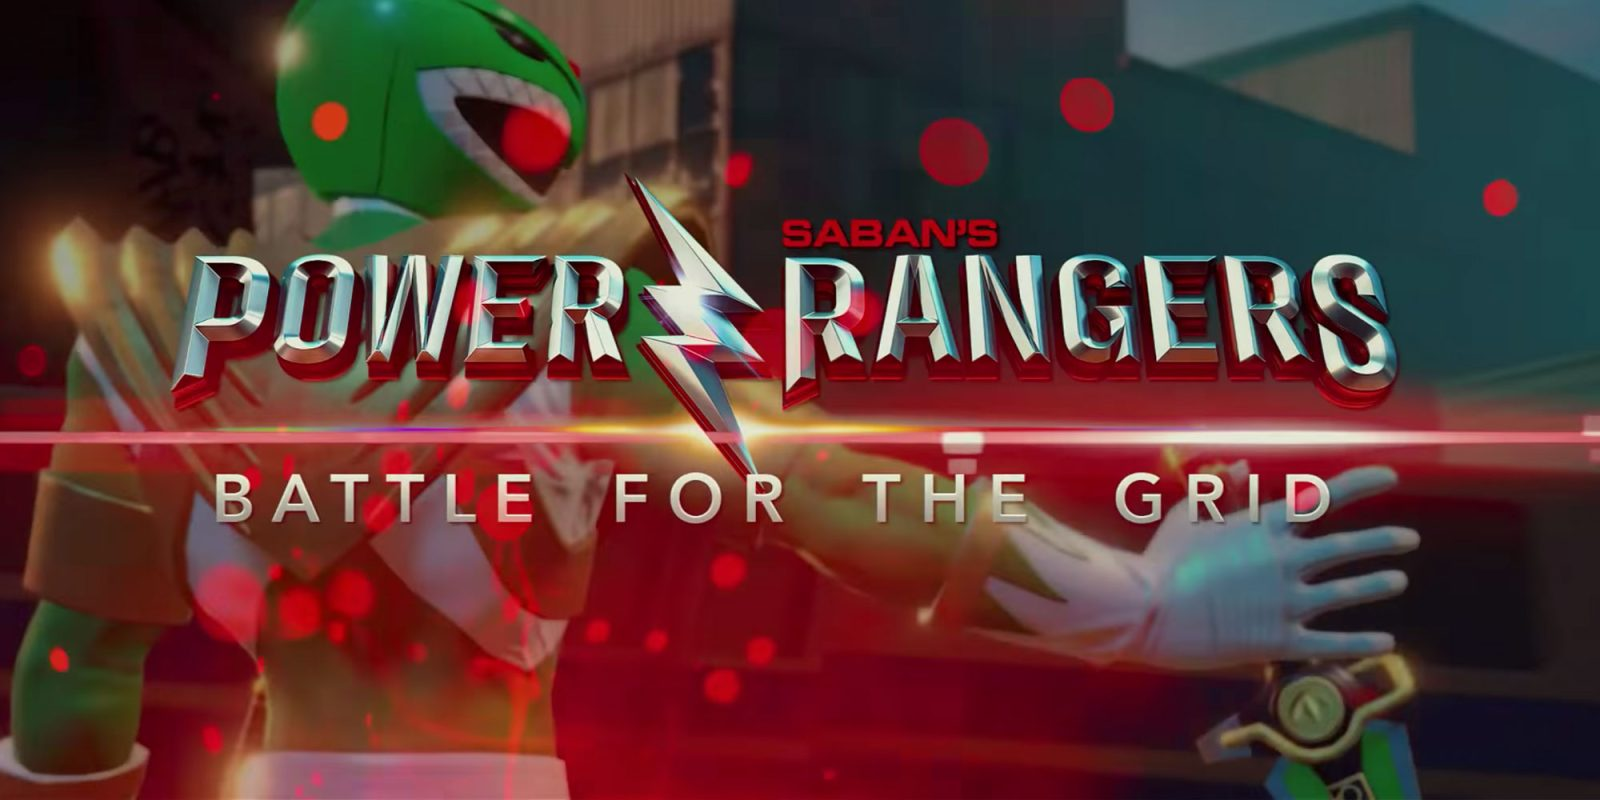 Power Rangers: Battle for the Grid Morphs onto PS4 in April